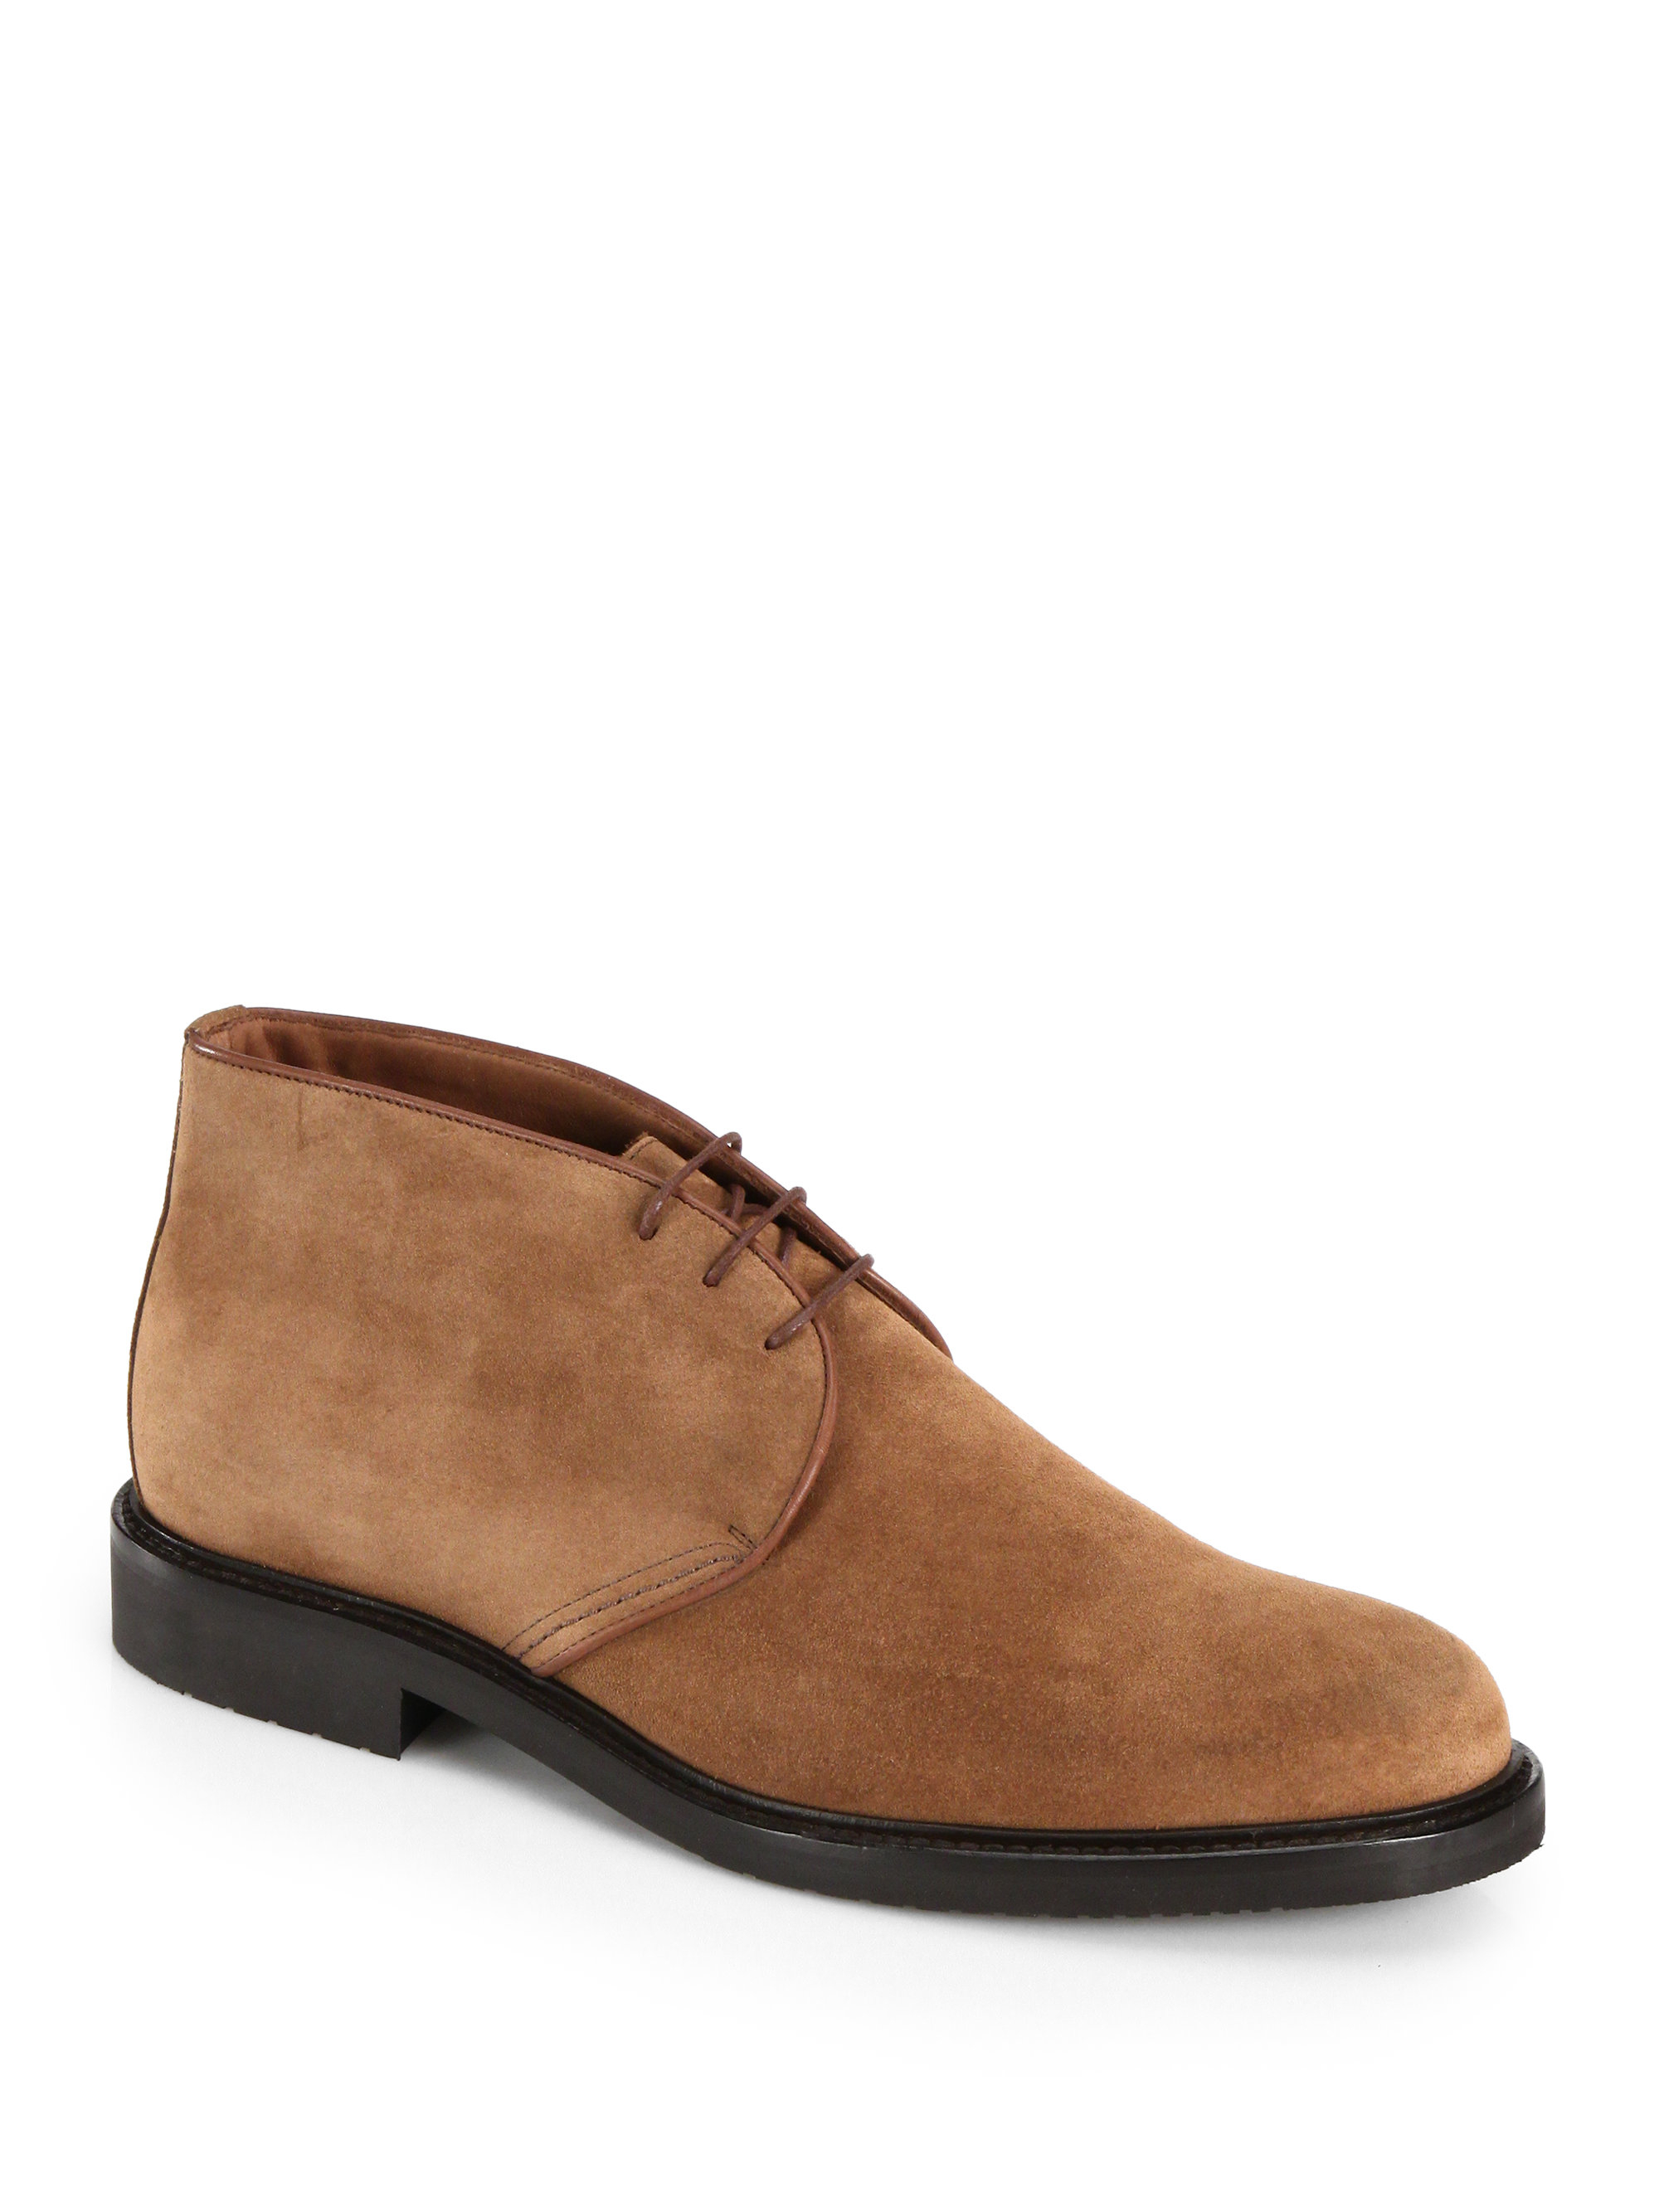 saks fifth avenue suede chukka boots in brown for lyst